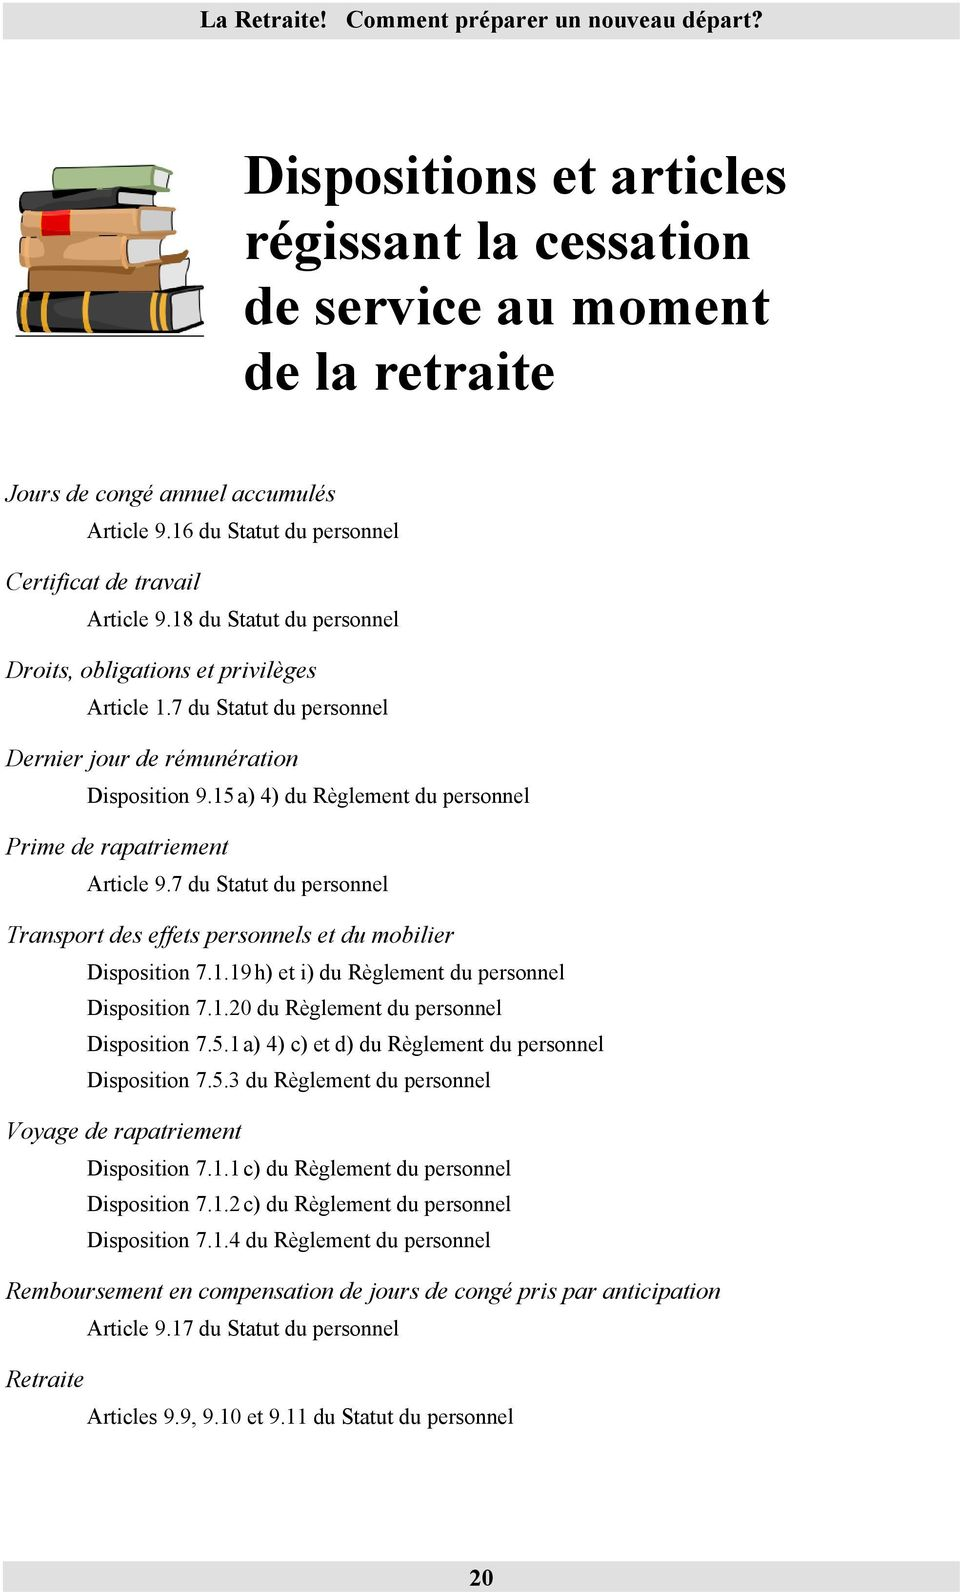 15 a) 4) du Règlement du personnel Prime de rapatriement Article 9.7 du Statut du personnel Transport des effets personnels et du mobilier Disposition 7.1.19 h) et i) du Règlement du personnel Disposition 7.